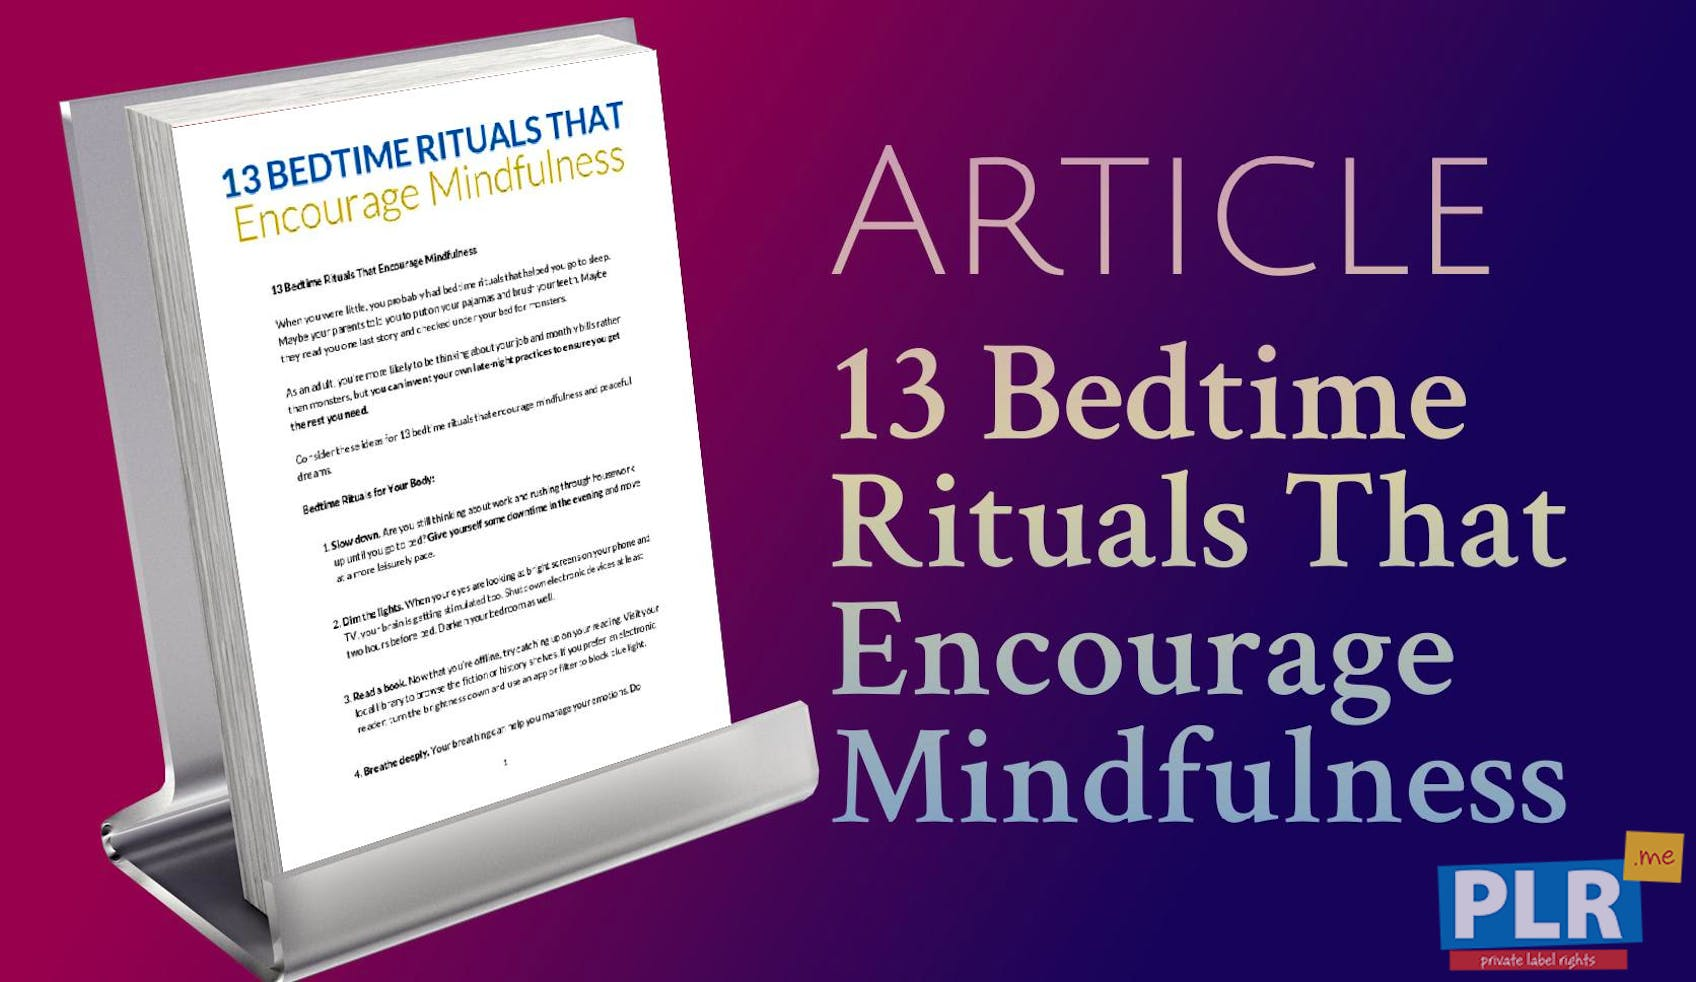 13 Bedtime Rituals That Encourage Mindfulness